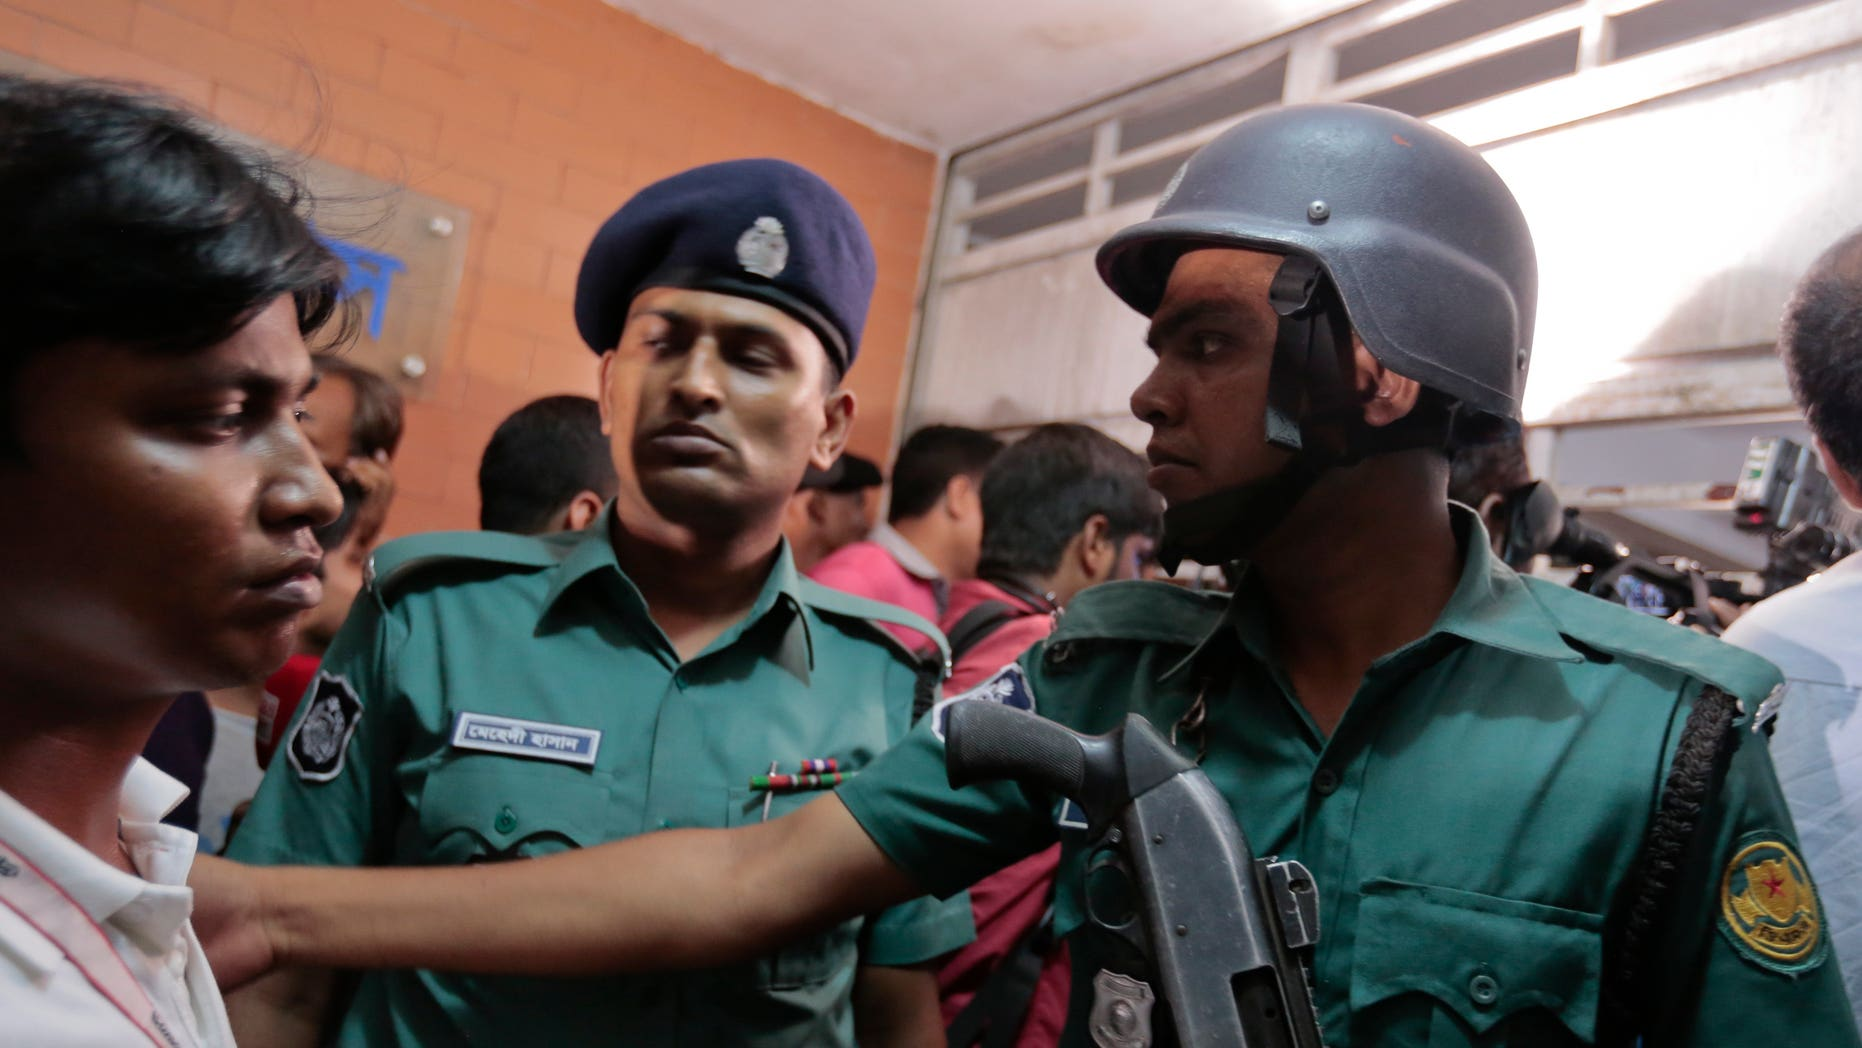 Bangladeshi policemen try to control the crowd of onlookers at a building in Dhaka where two people were found stabbed to death.